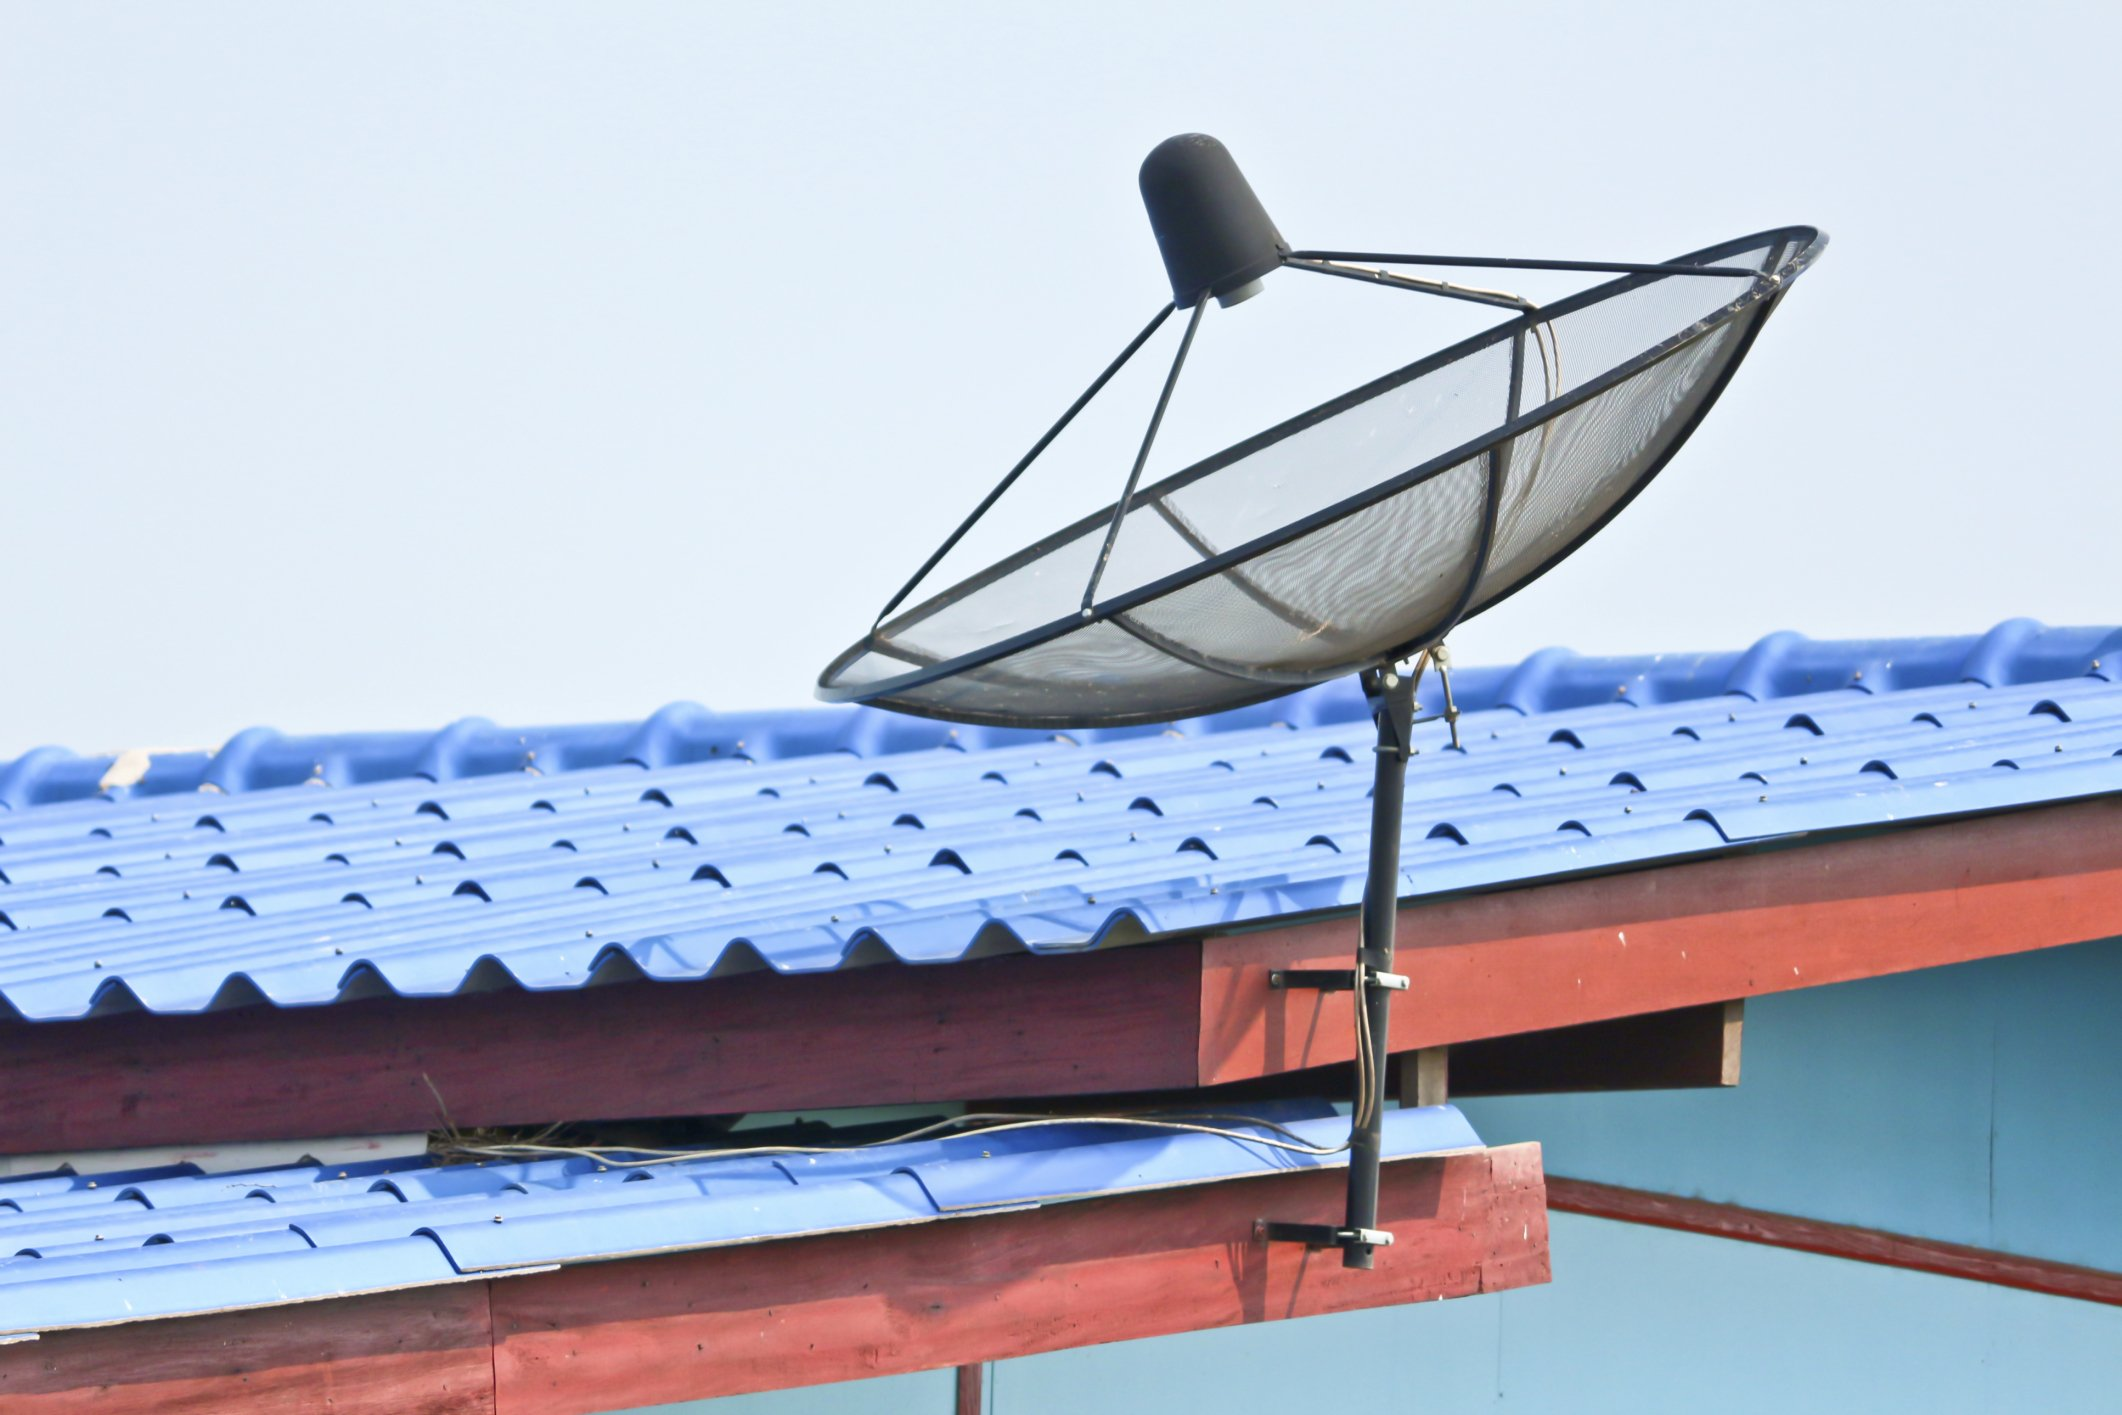 Satellite on Top of the Roof||||